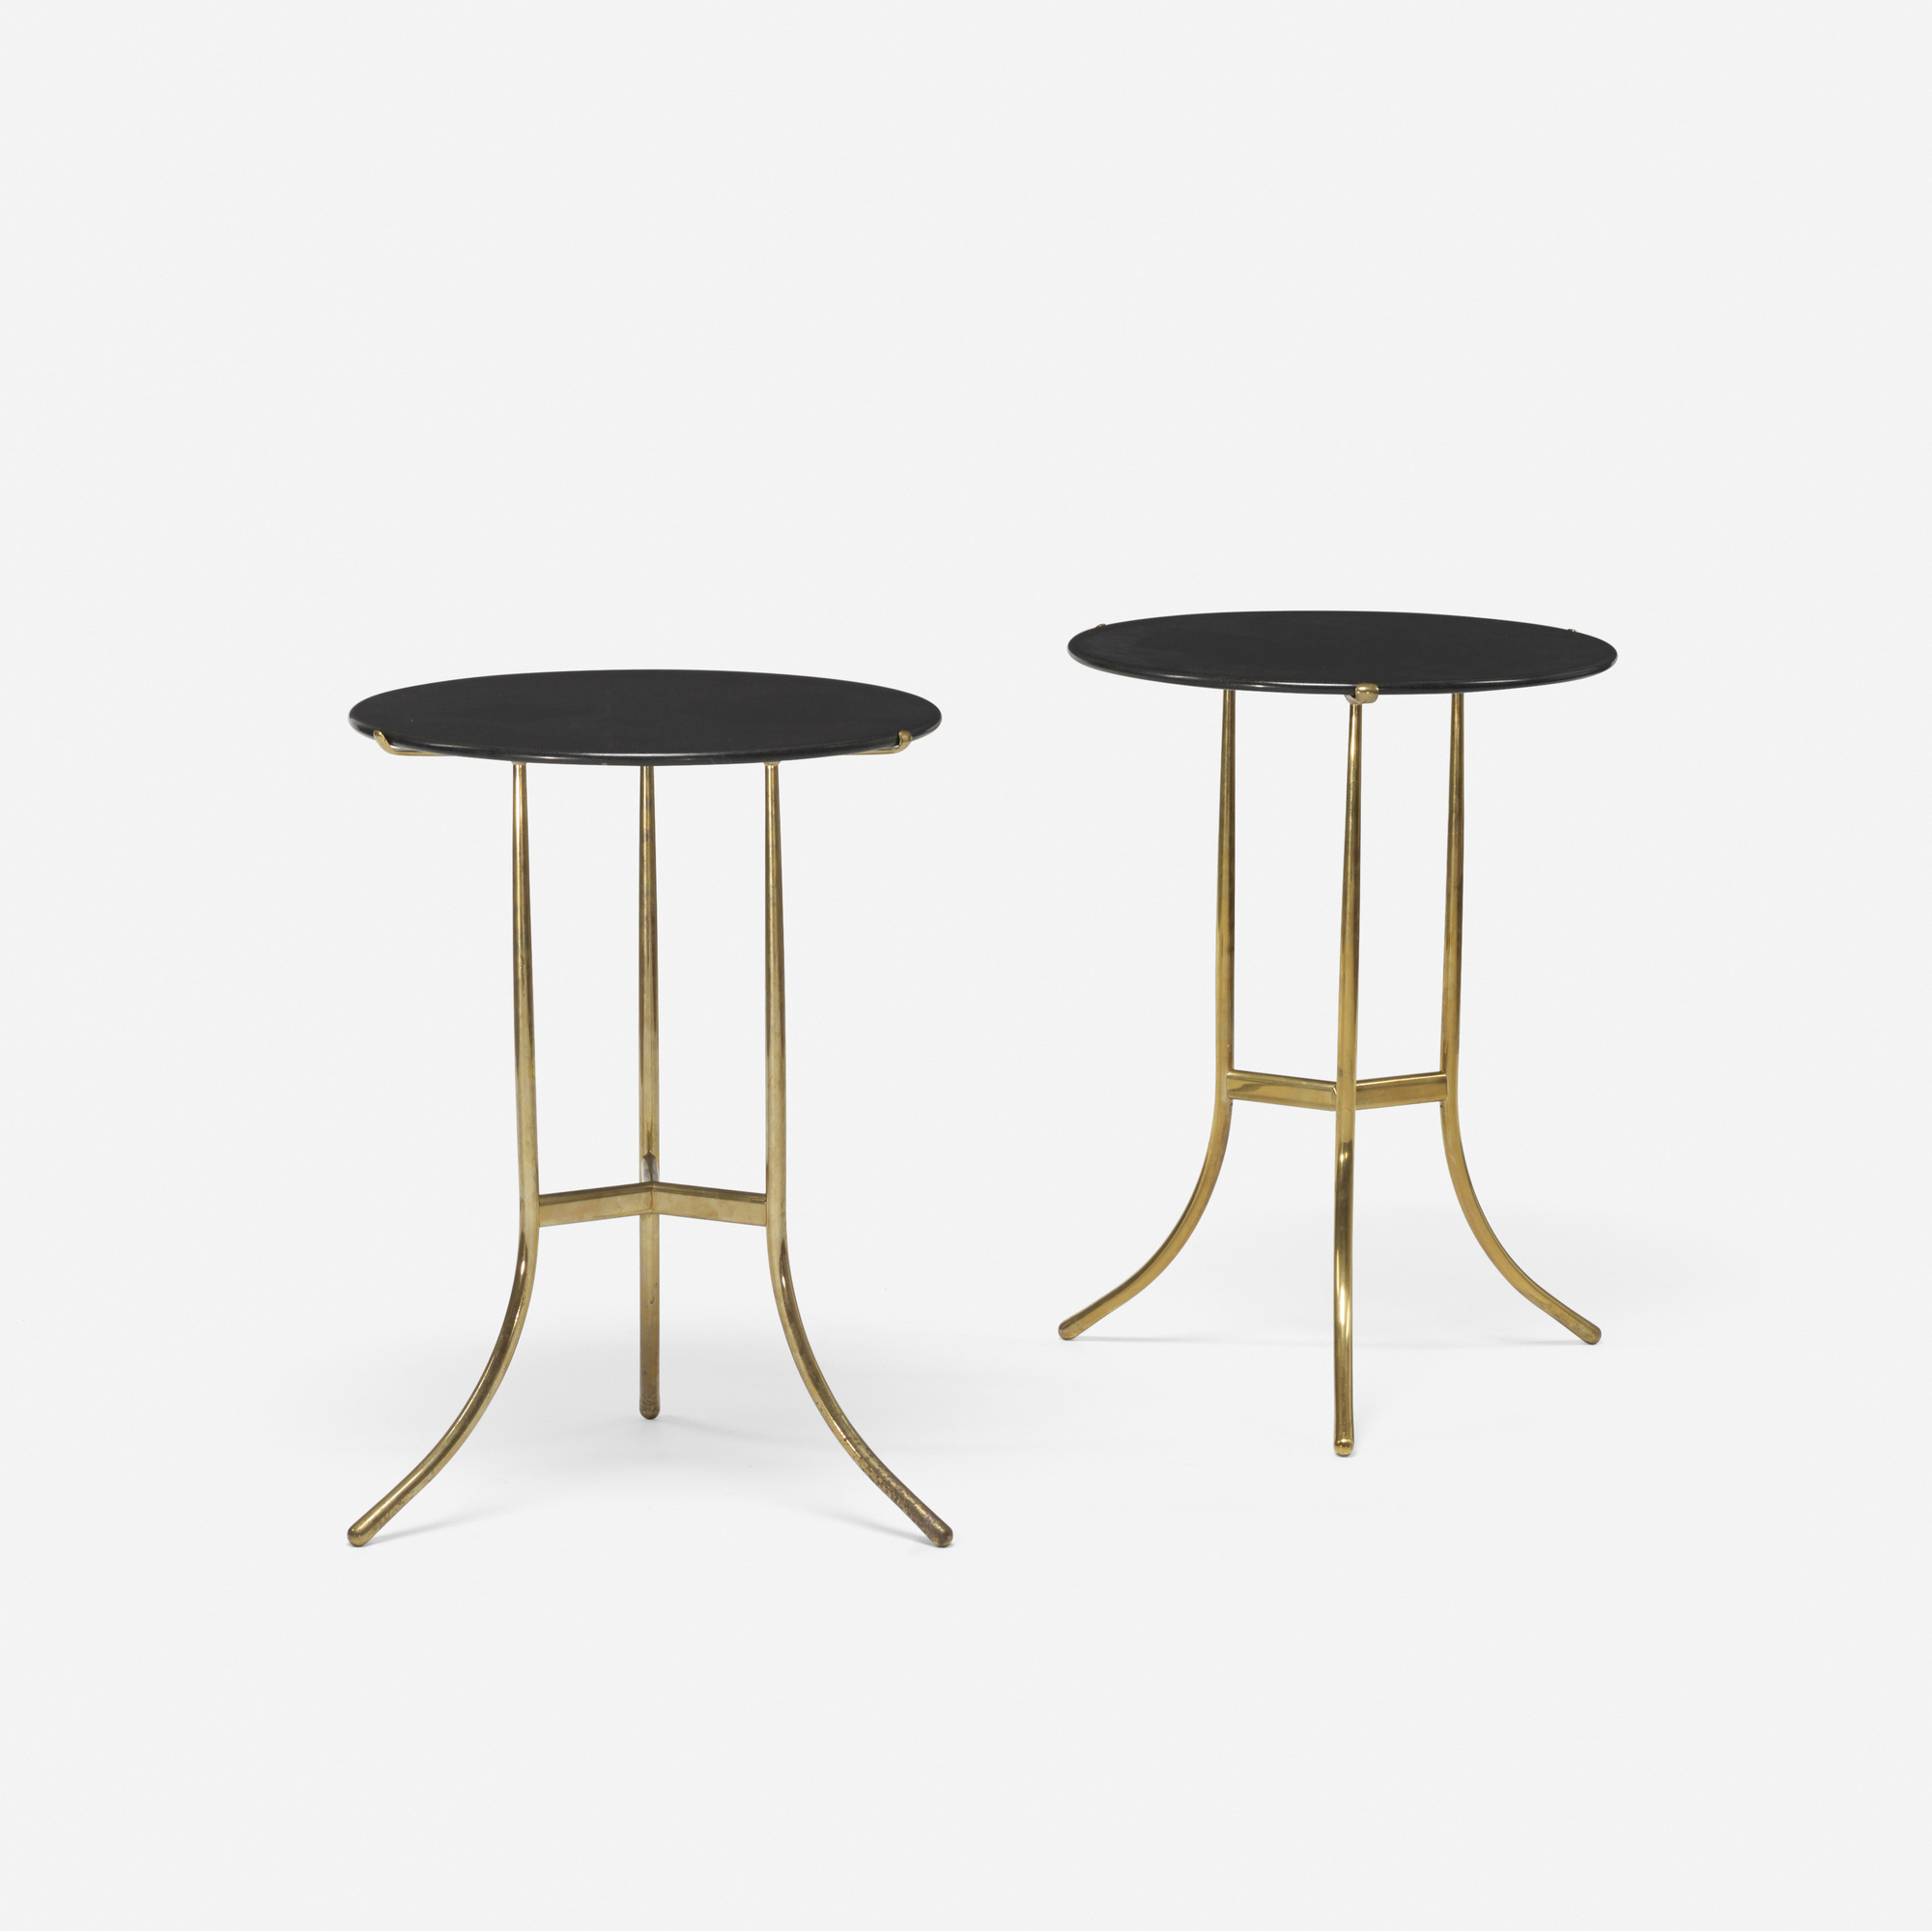 393: Cedric Hartman / occasional tables, pair (2 of 3)